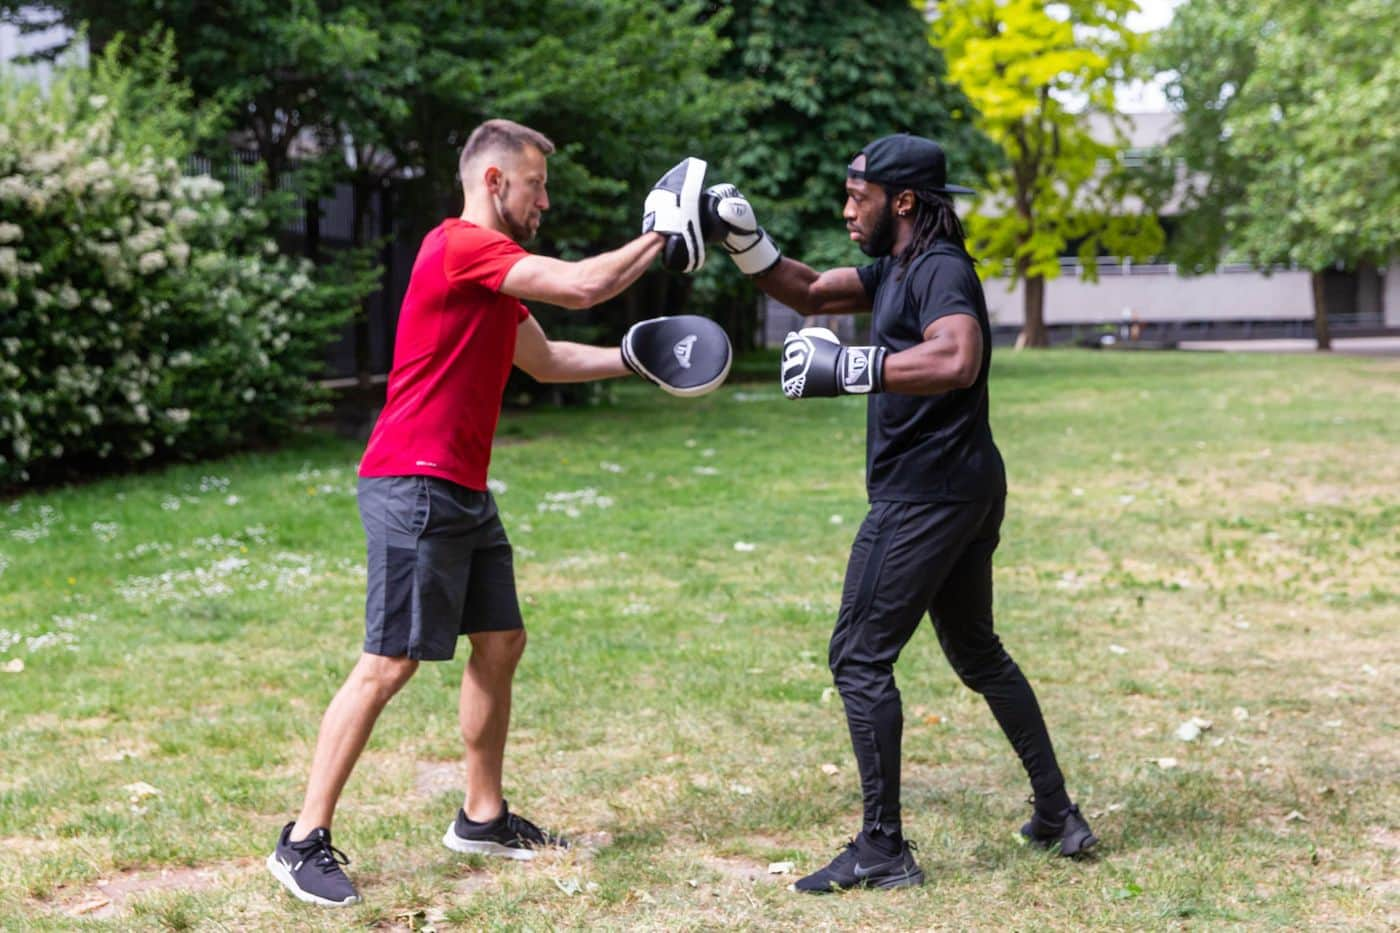 Believ In Boxing - Outdoor Boxing Class